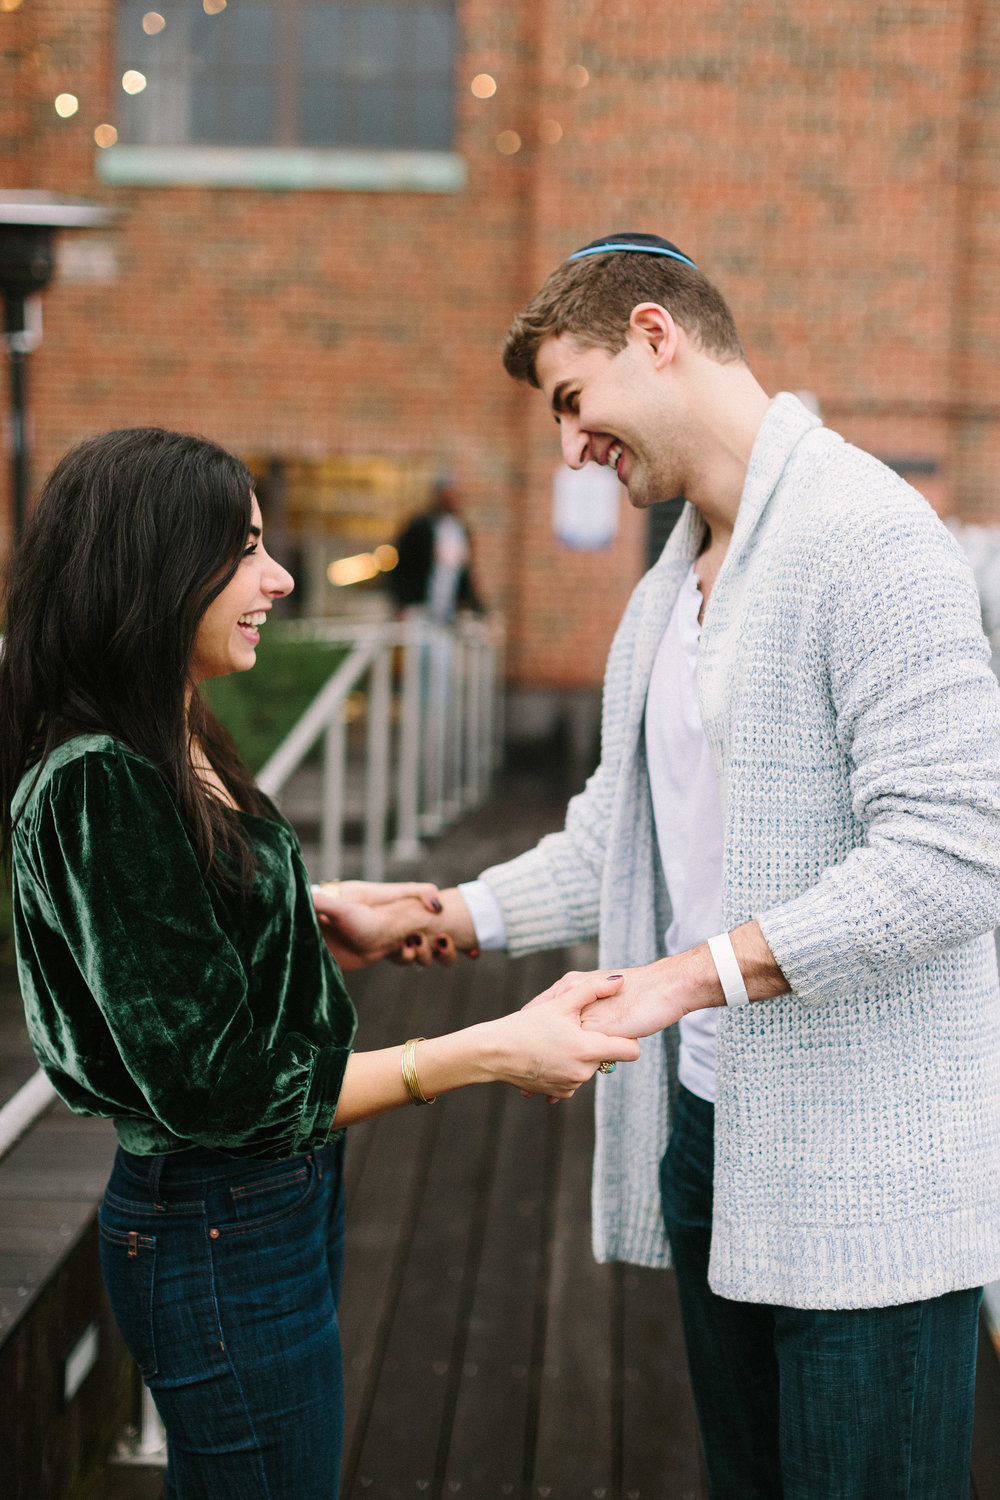 atlanta_proposal_photographer_ice_skating_rooftop_ponce_city_surprise_jewish_couple_1180.jpg